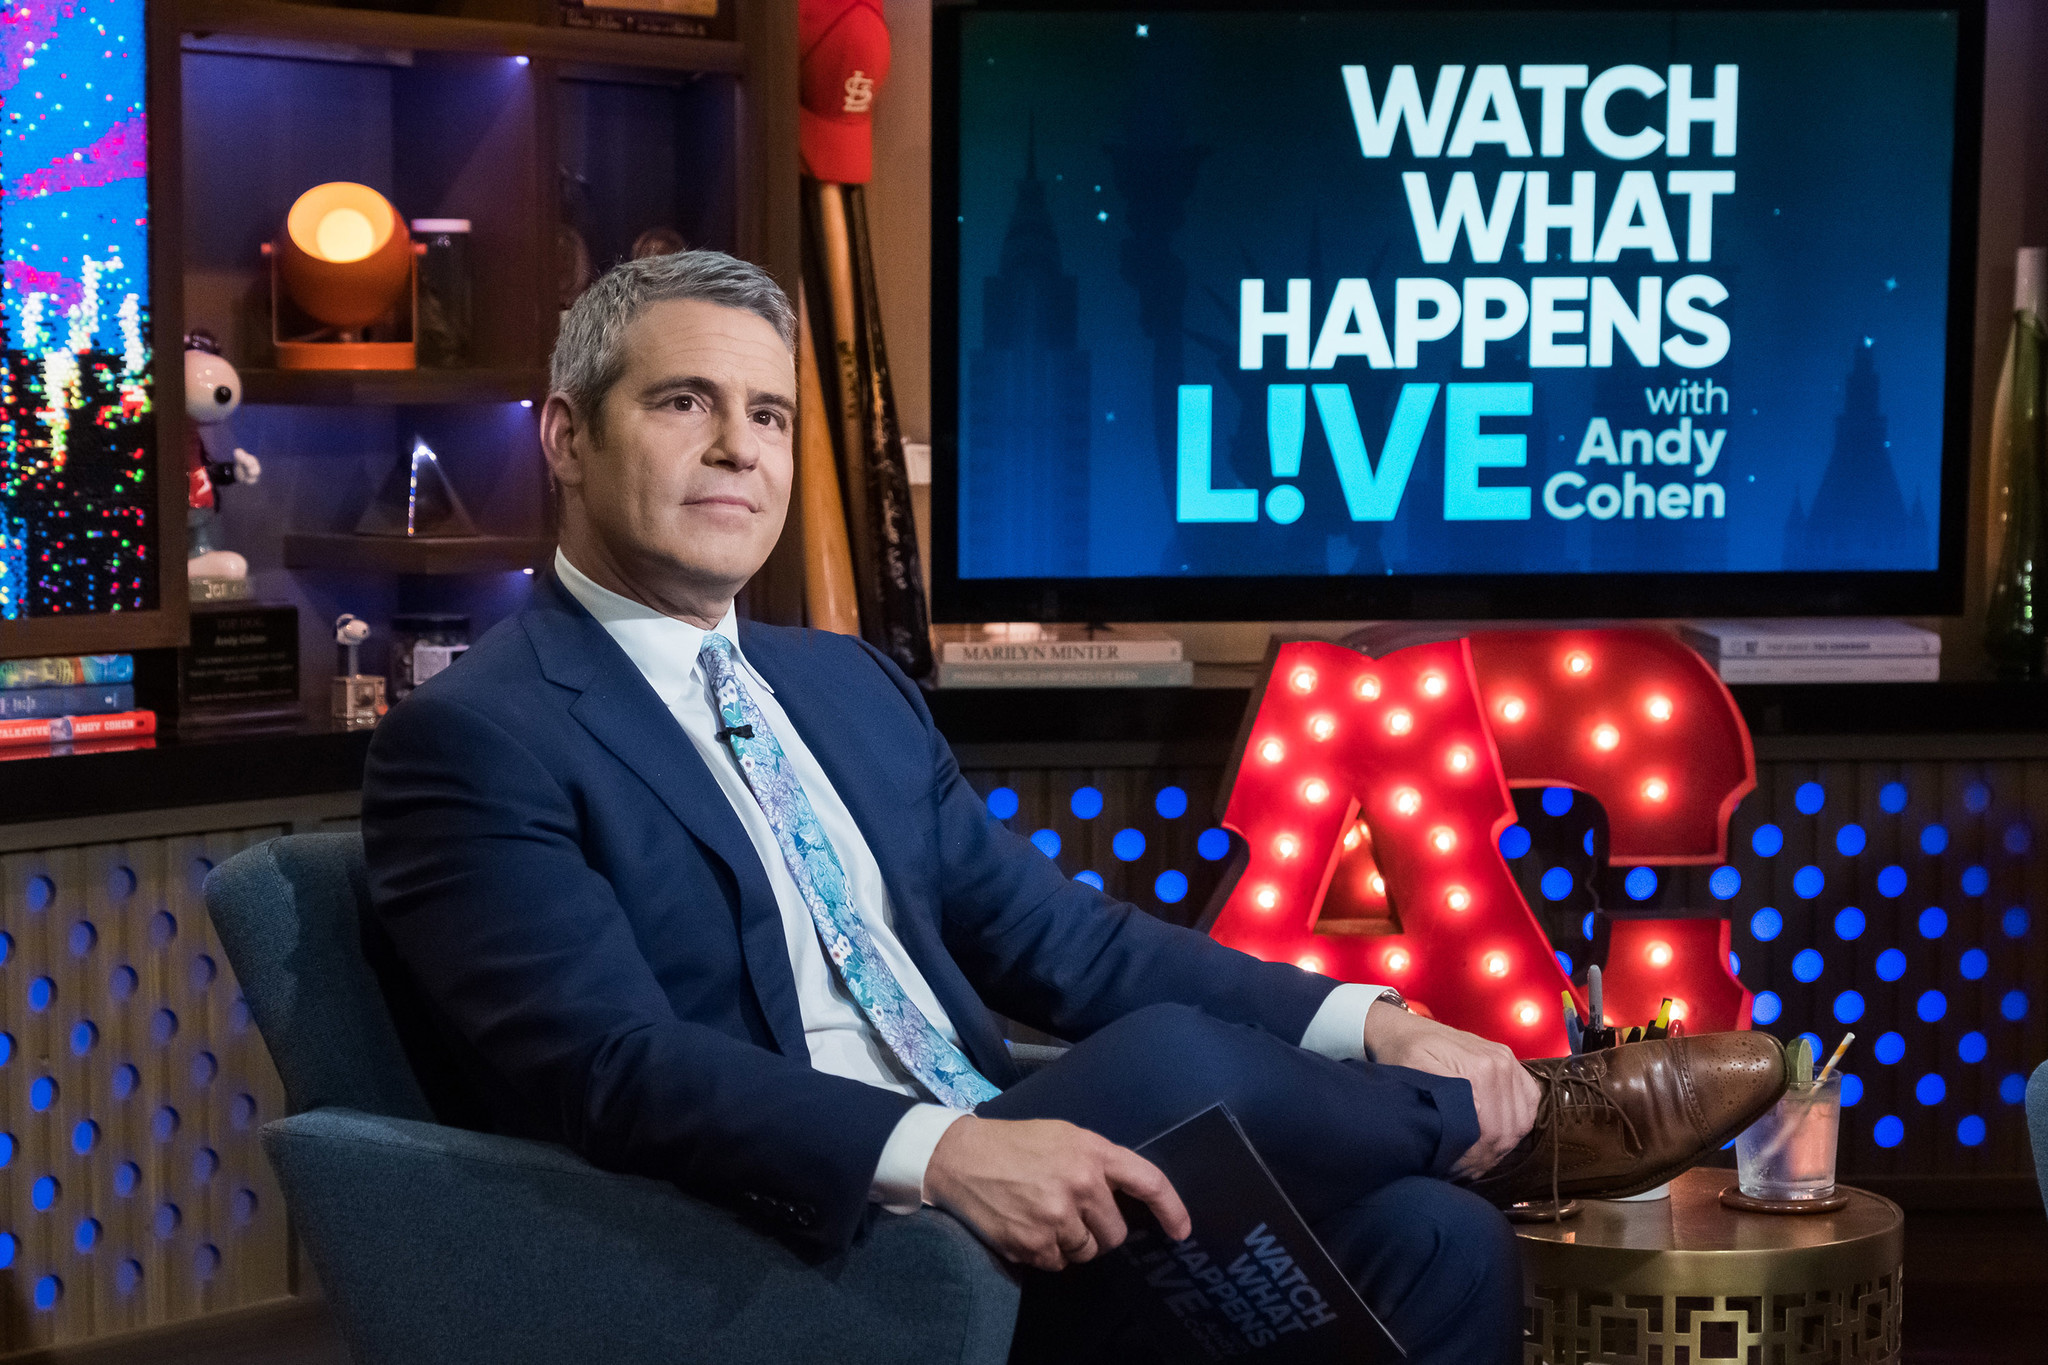 Andy Cohen's late-night talk show 'Watch What Happens Live' renewed through 2021